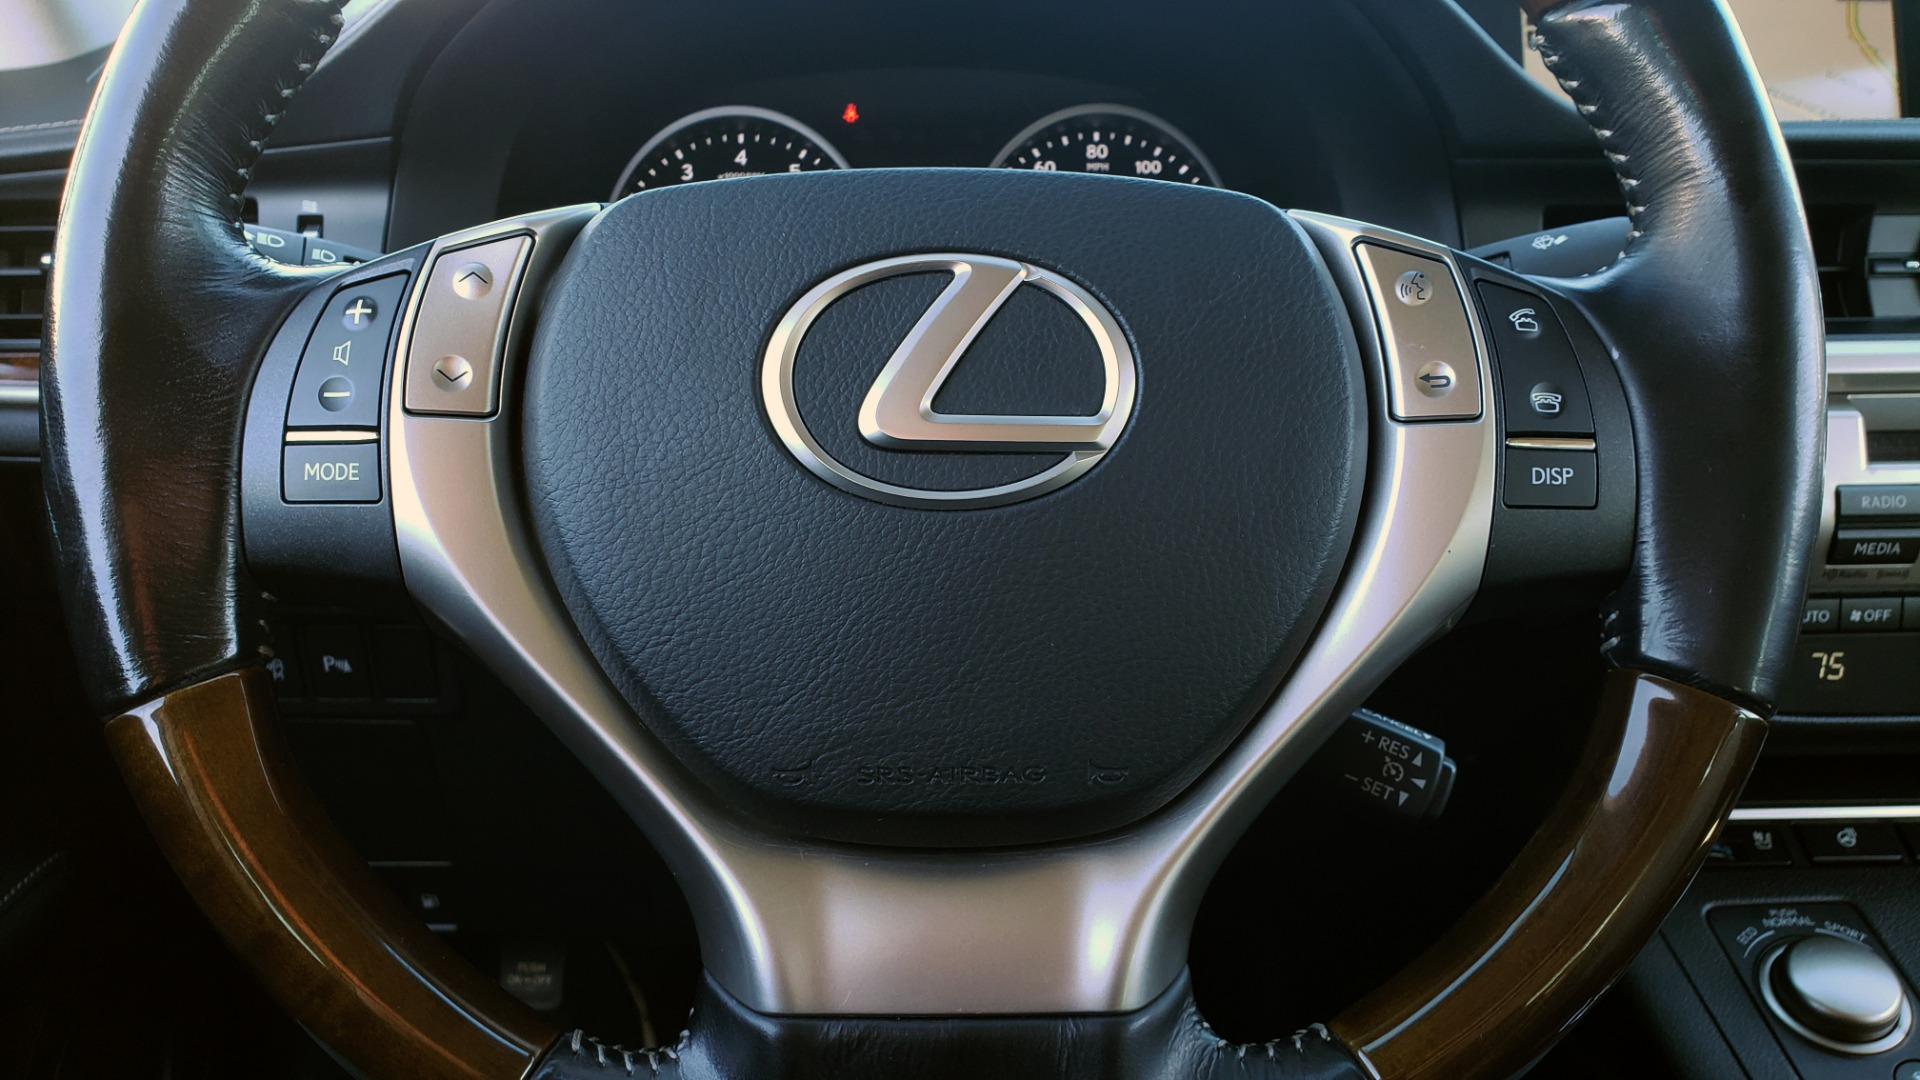 Used 2015 Lexus ES 350 LUXURY PKG / NAV / BSM / LCA / PARK ASSIST / REARVIEW for sale Sold at Formula Imports in Charlotte NC 28227 33